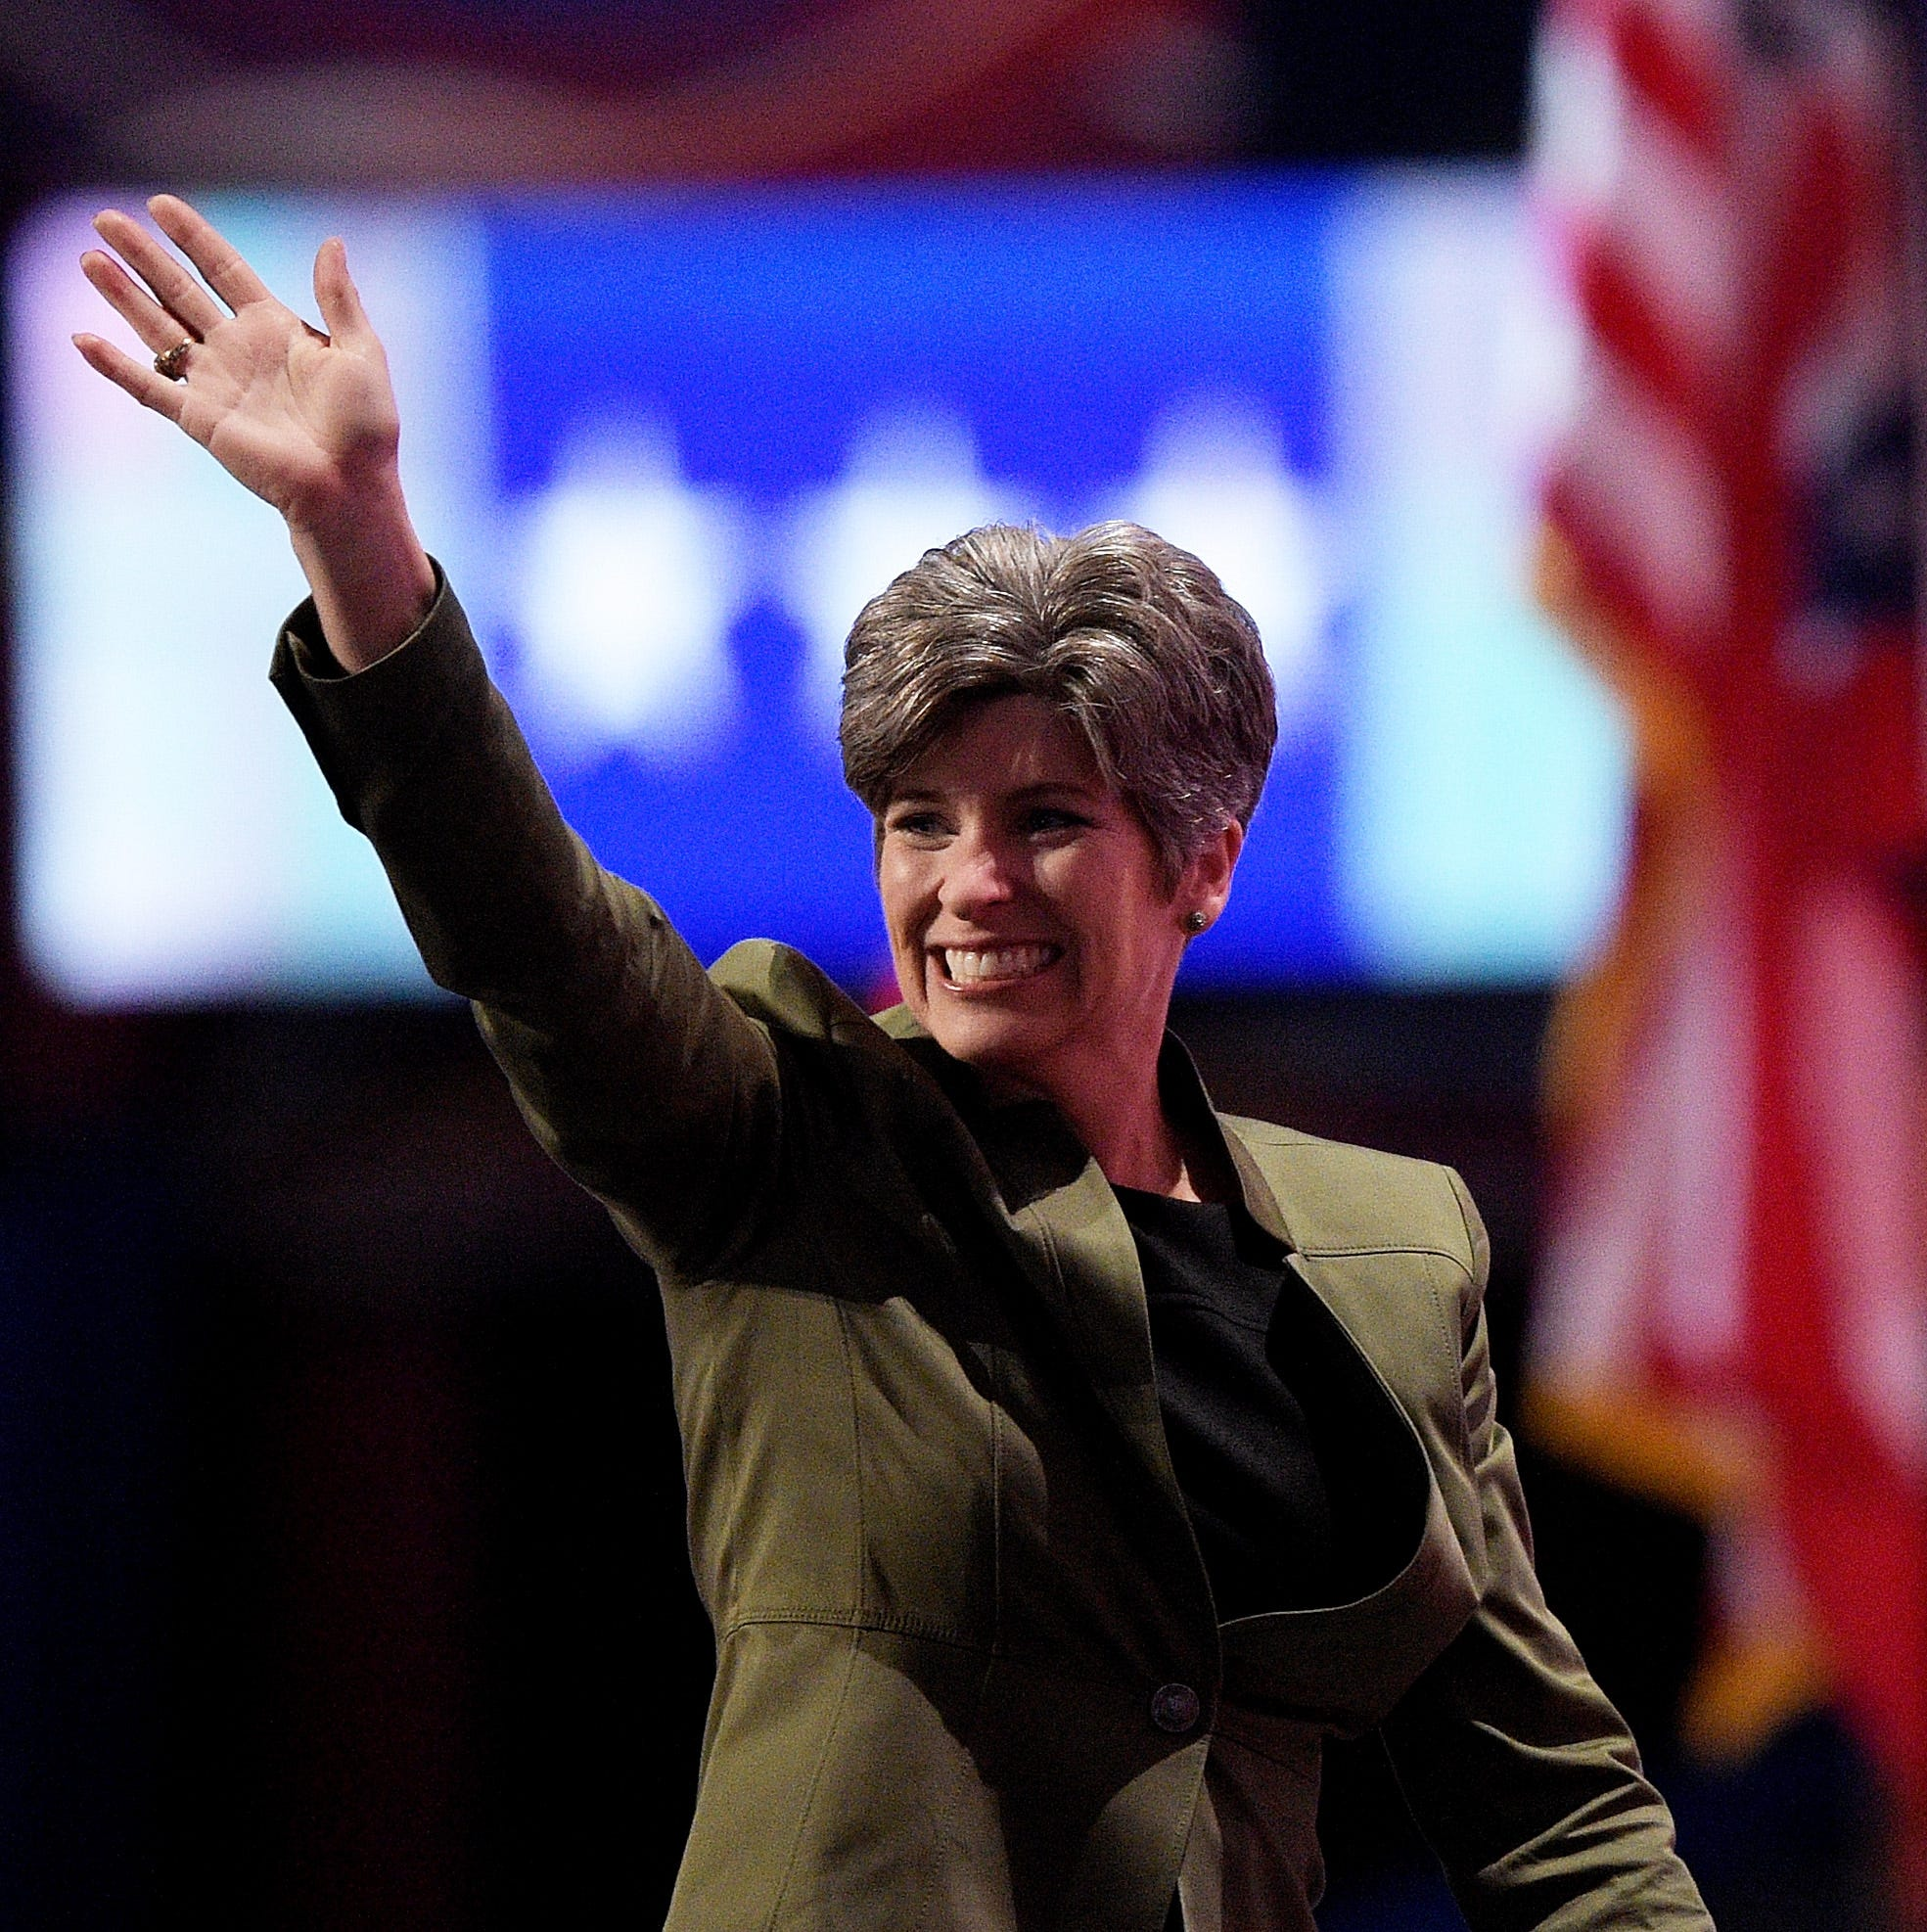 Iowa Poll: Joni Ernst's approval rating hits new high as she readies for 2020 re-election bid